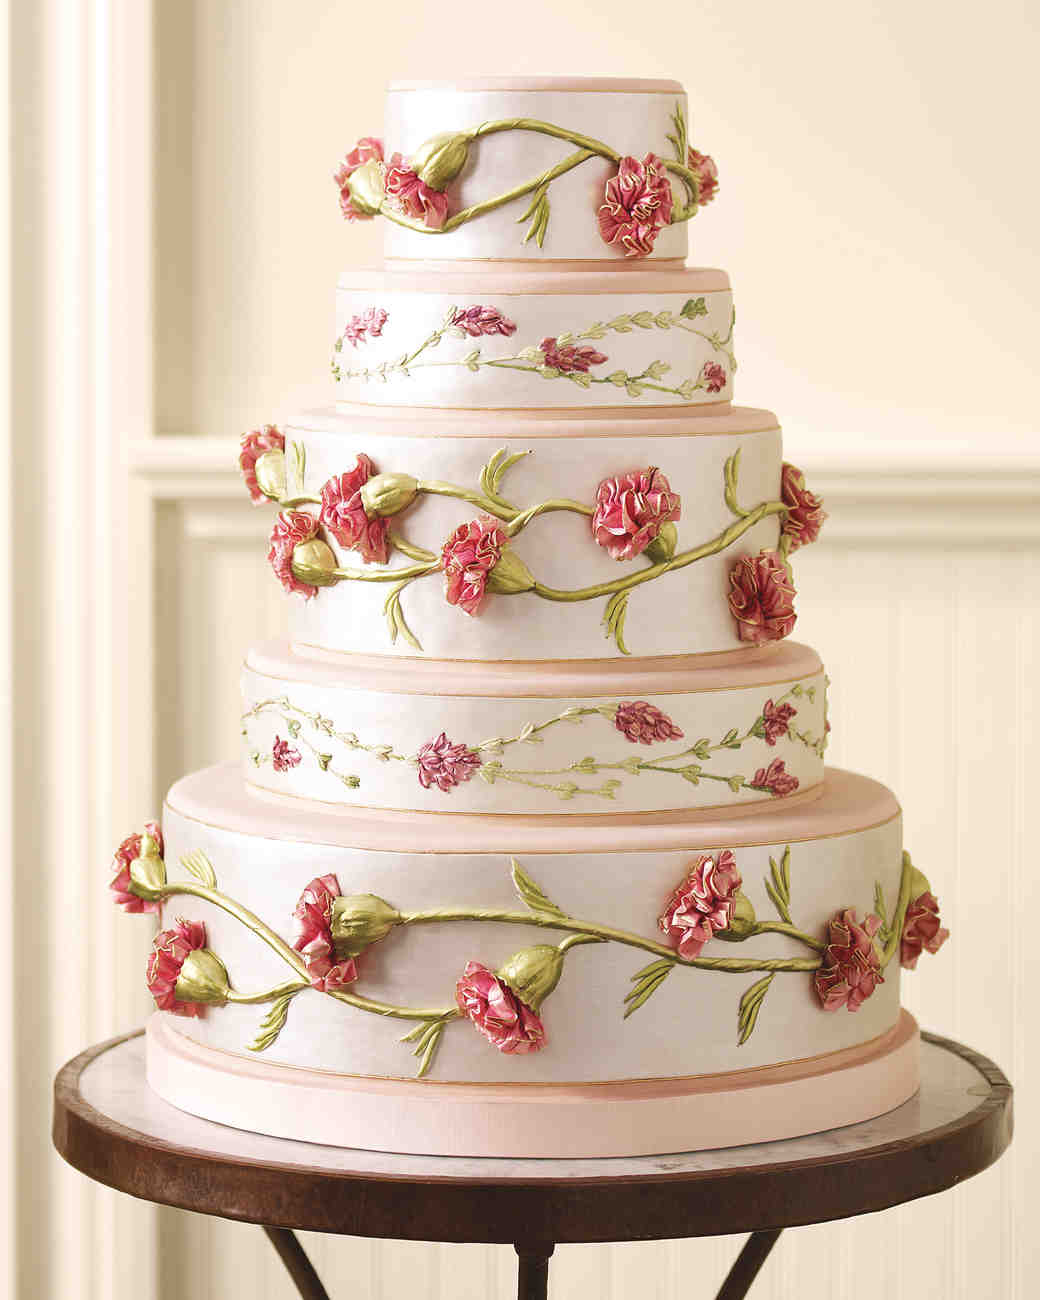 wedding cakes recipes martha stewart 20 years of gorgeous wedding cakes by pastry chef ben 25344